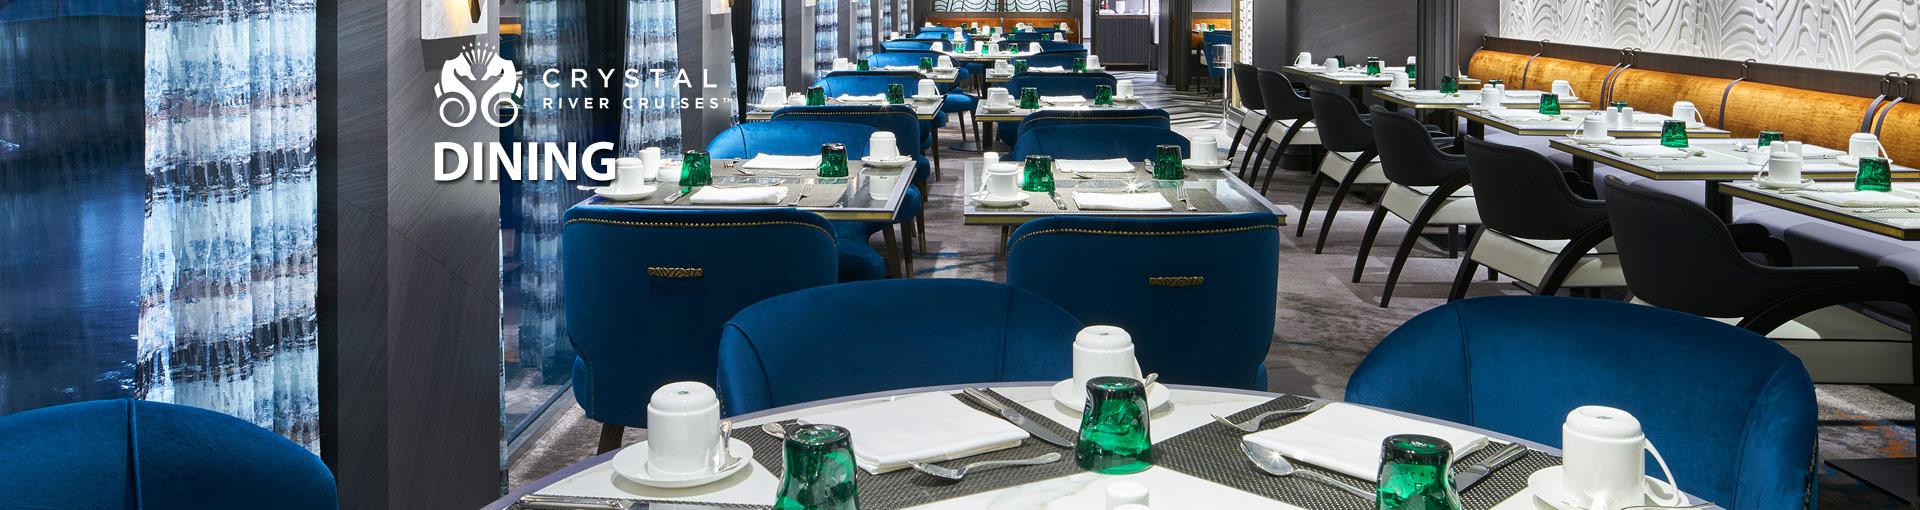 Crystal River Cruises Dining